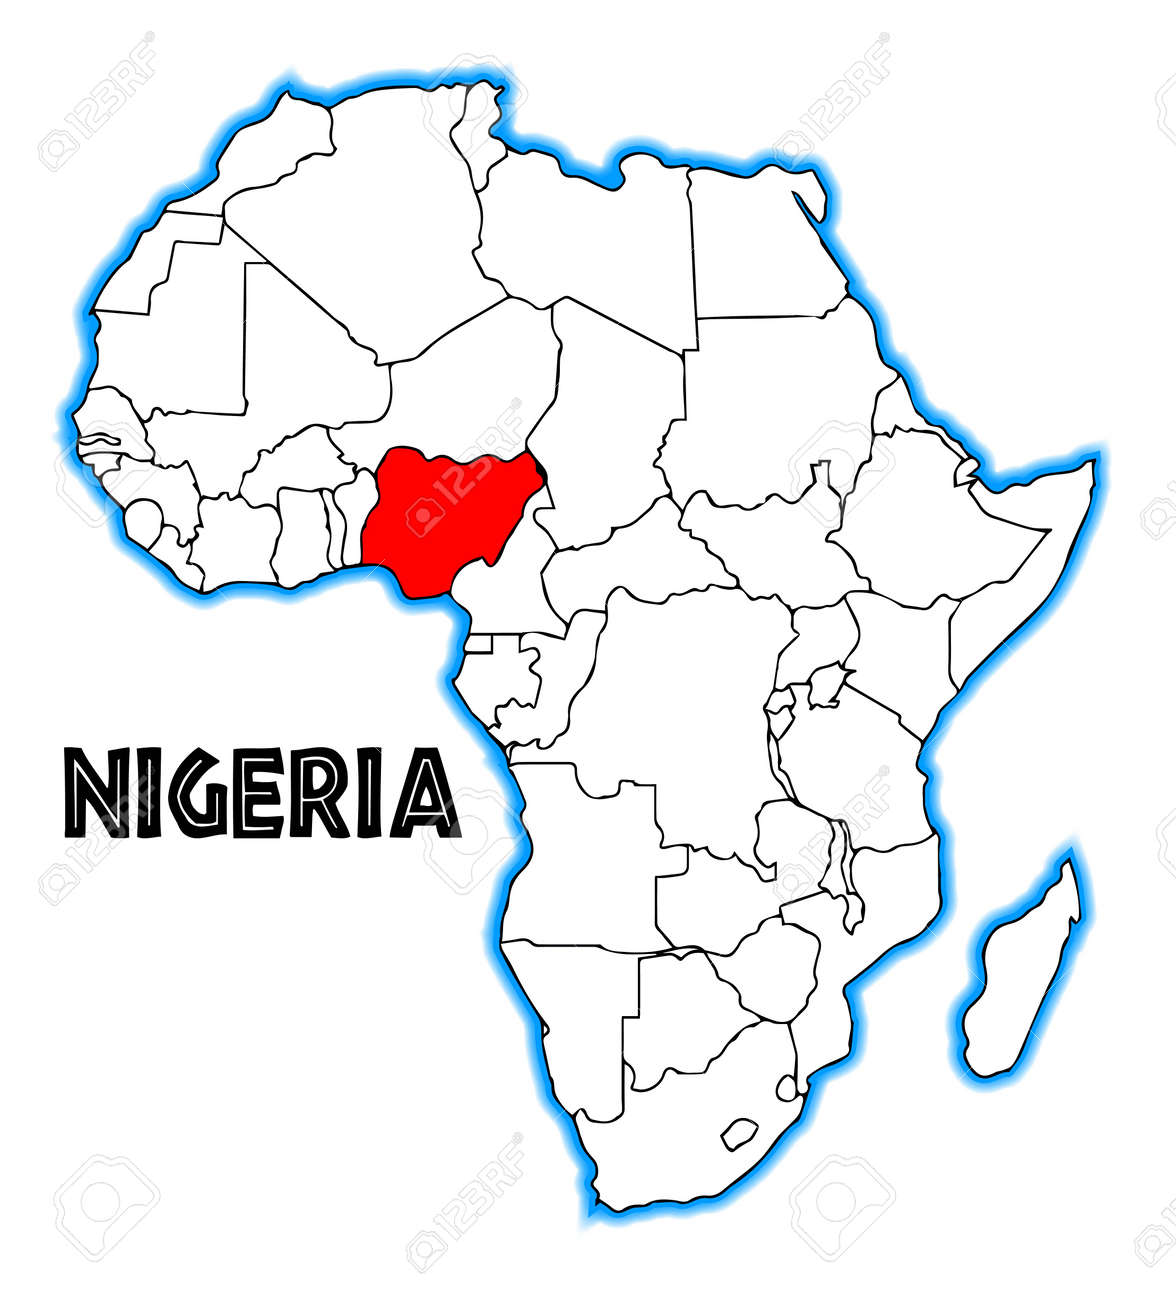 Nigeria outline inset into a map of Africa over a white background